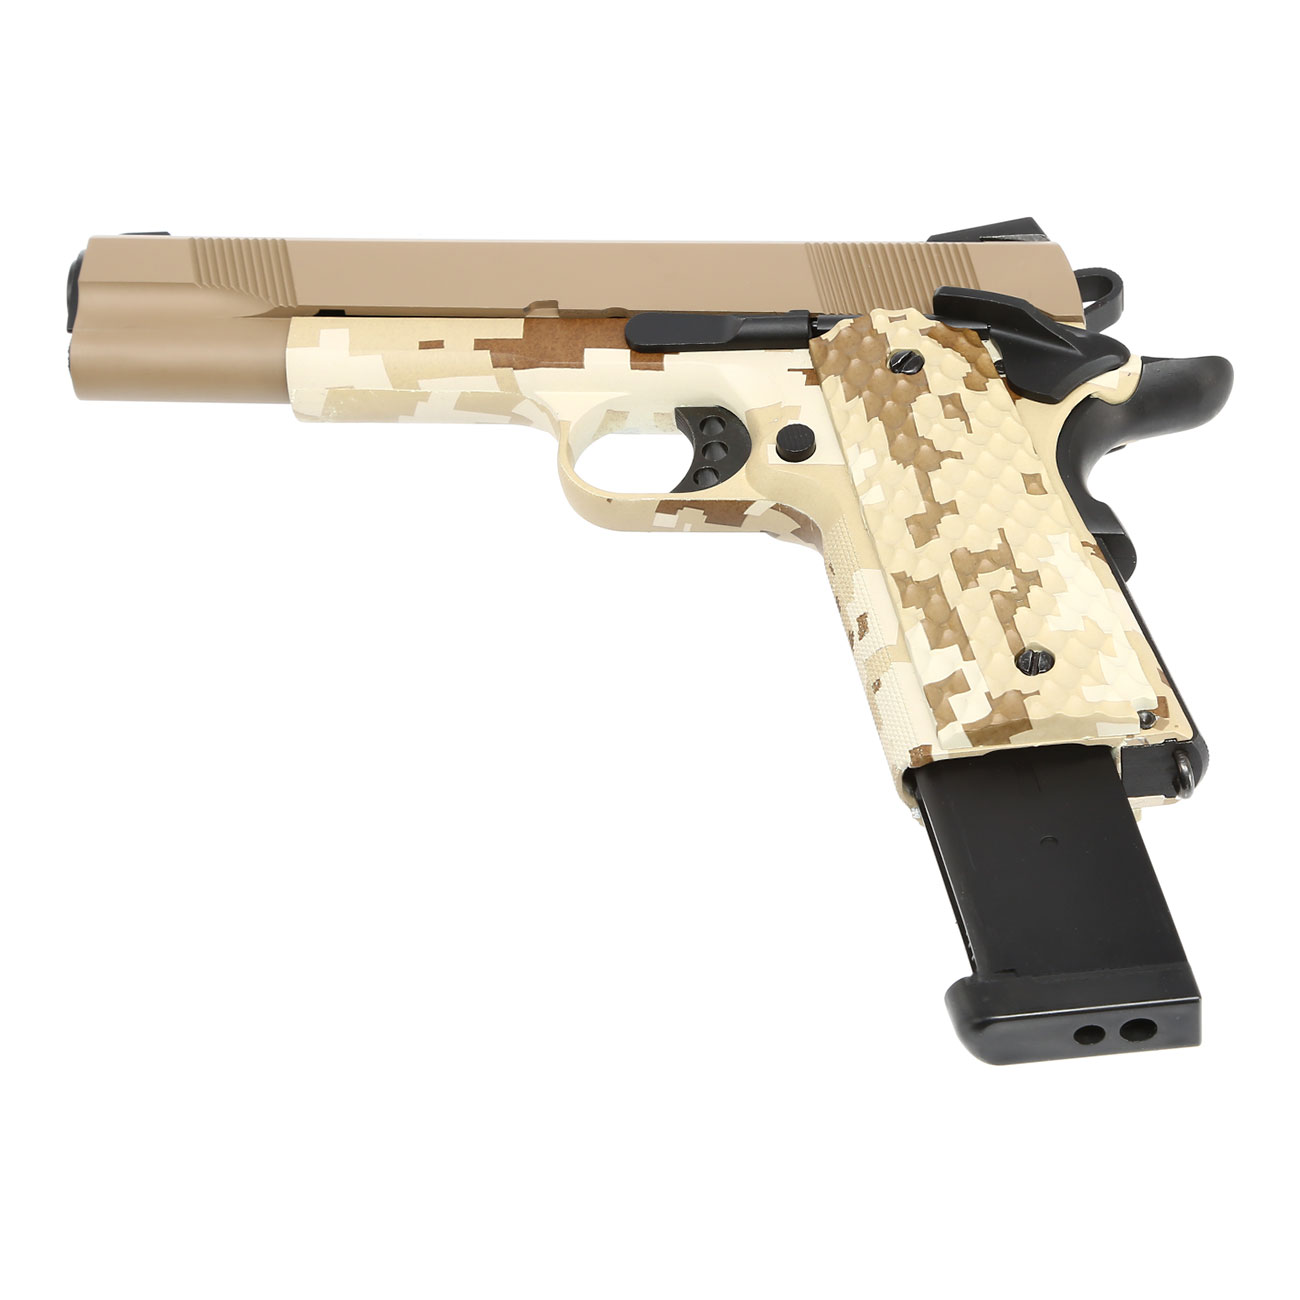 Nuprol Raven M1911 MEU Vollmetall GBB 6mm BB Tan / Digital Desert 5